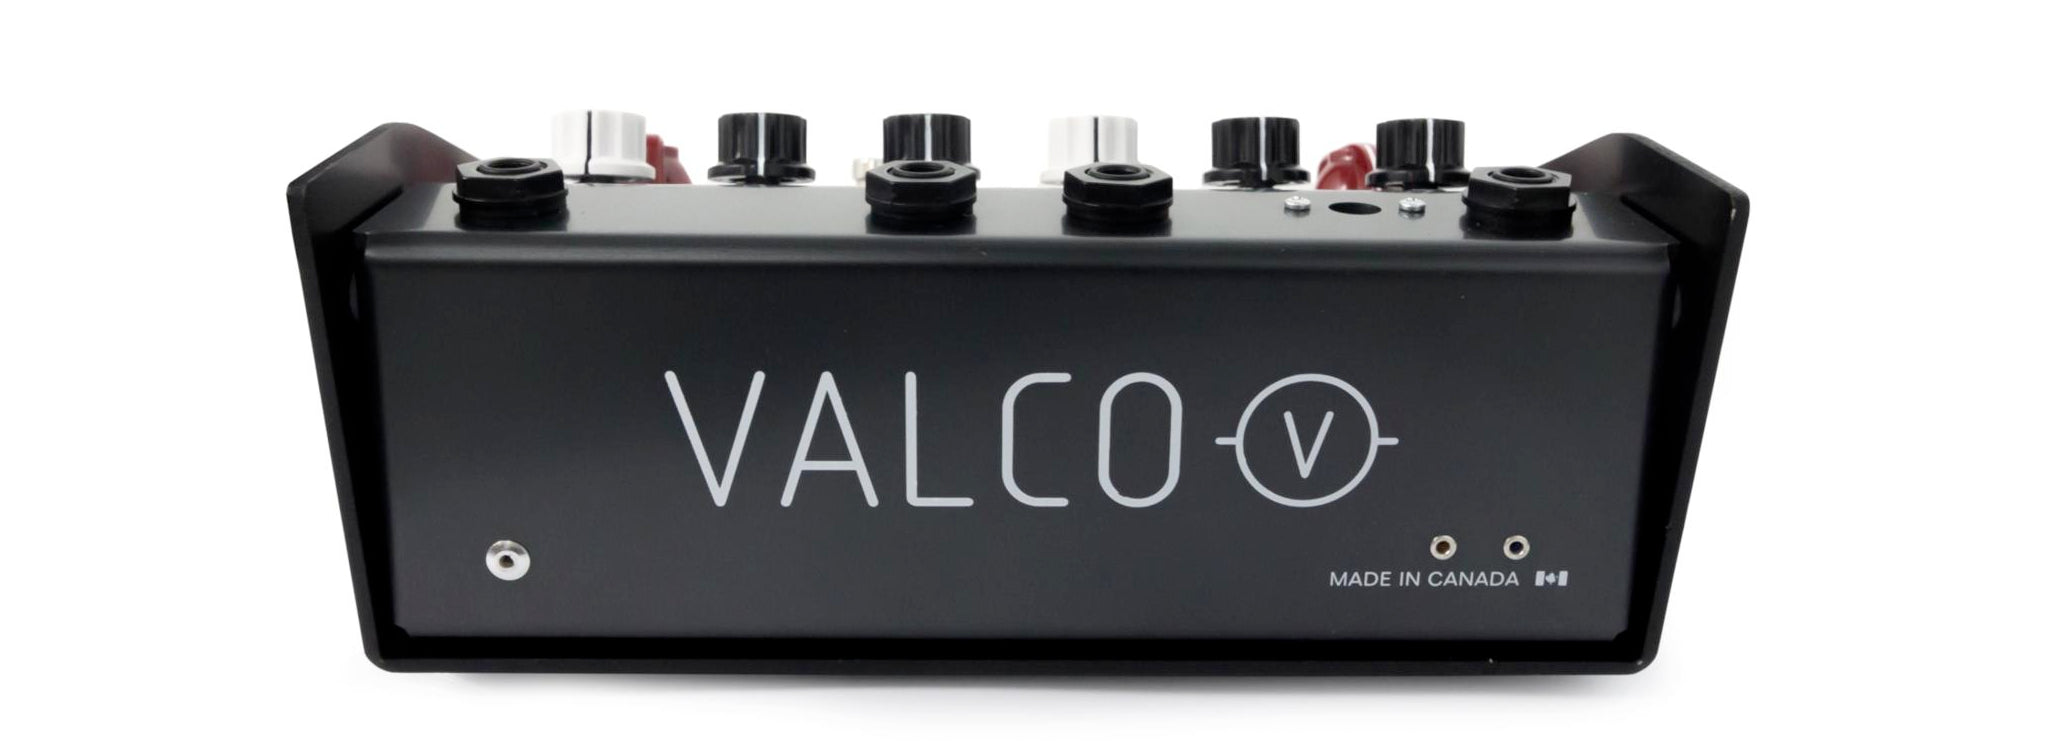 Valco BloodBuzz Pedal